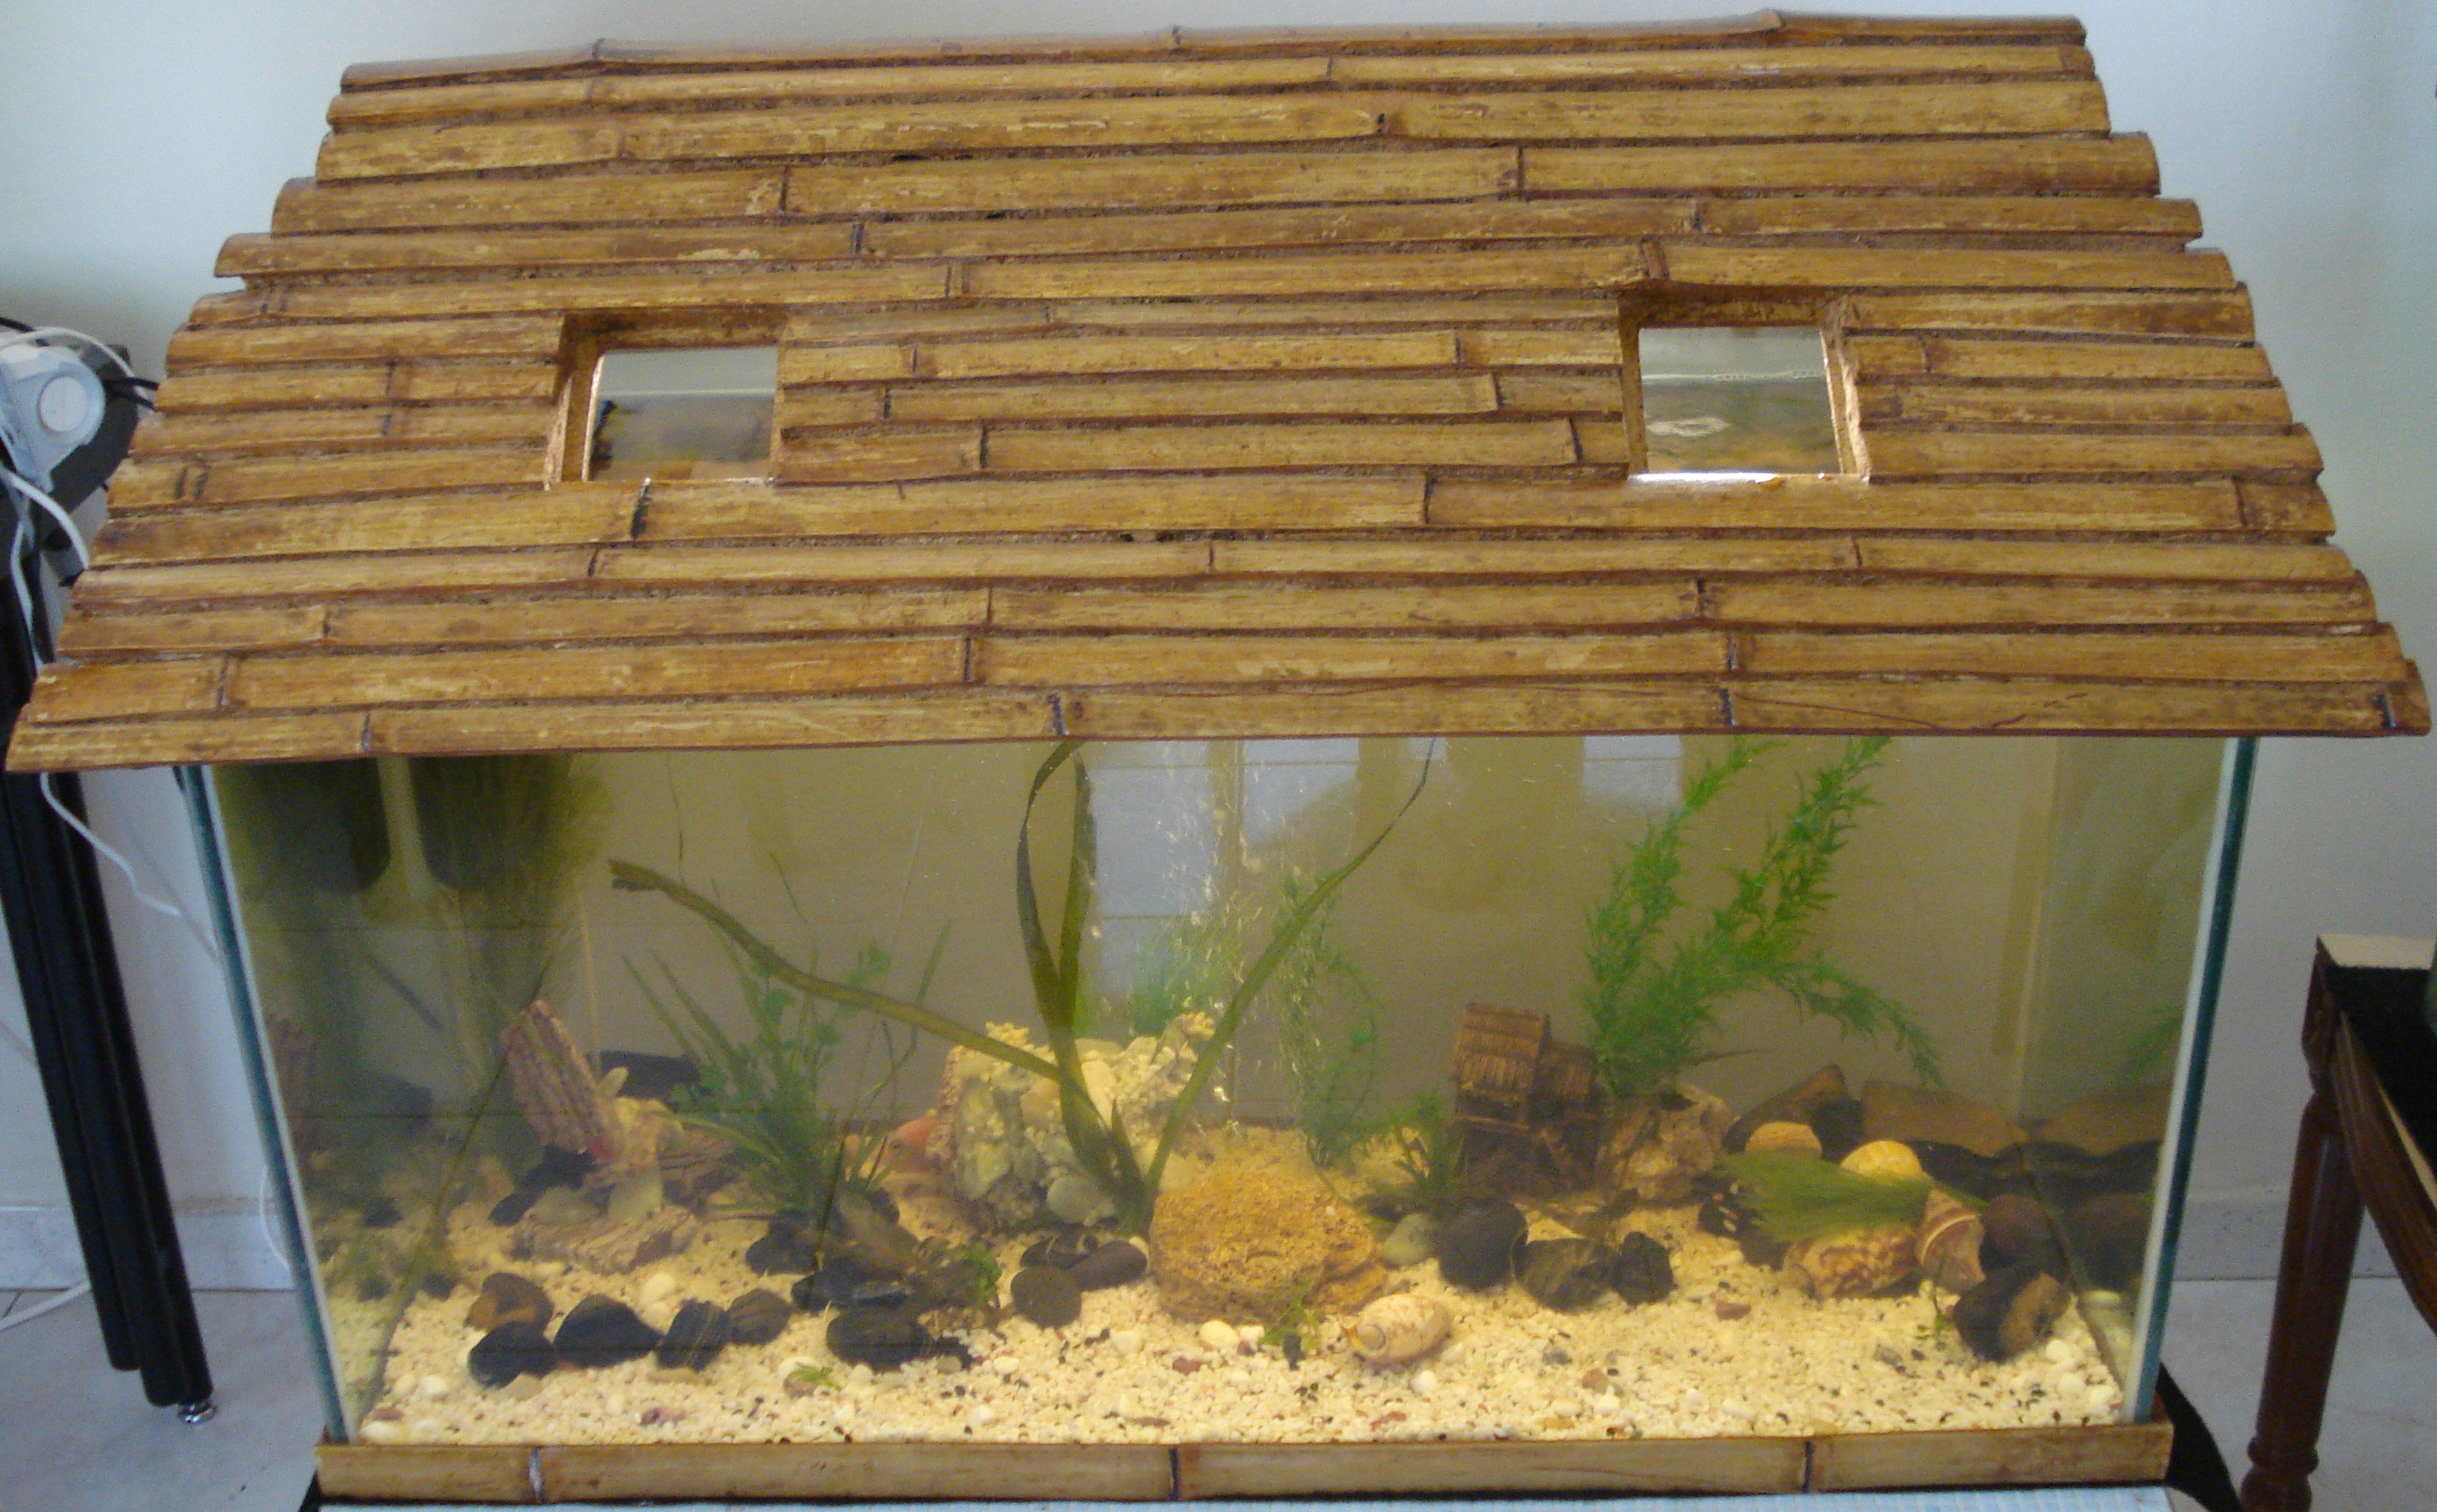 Decoration Interieur Aquarium Enkiaqua L Aquariophilie à Dakar